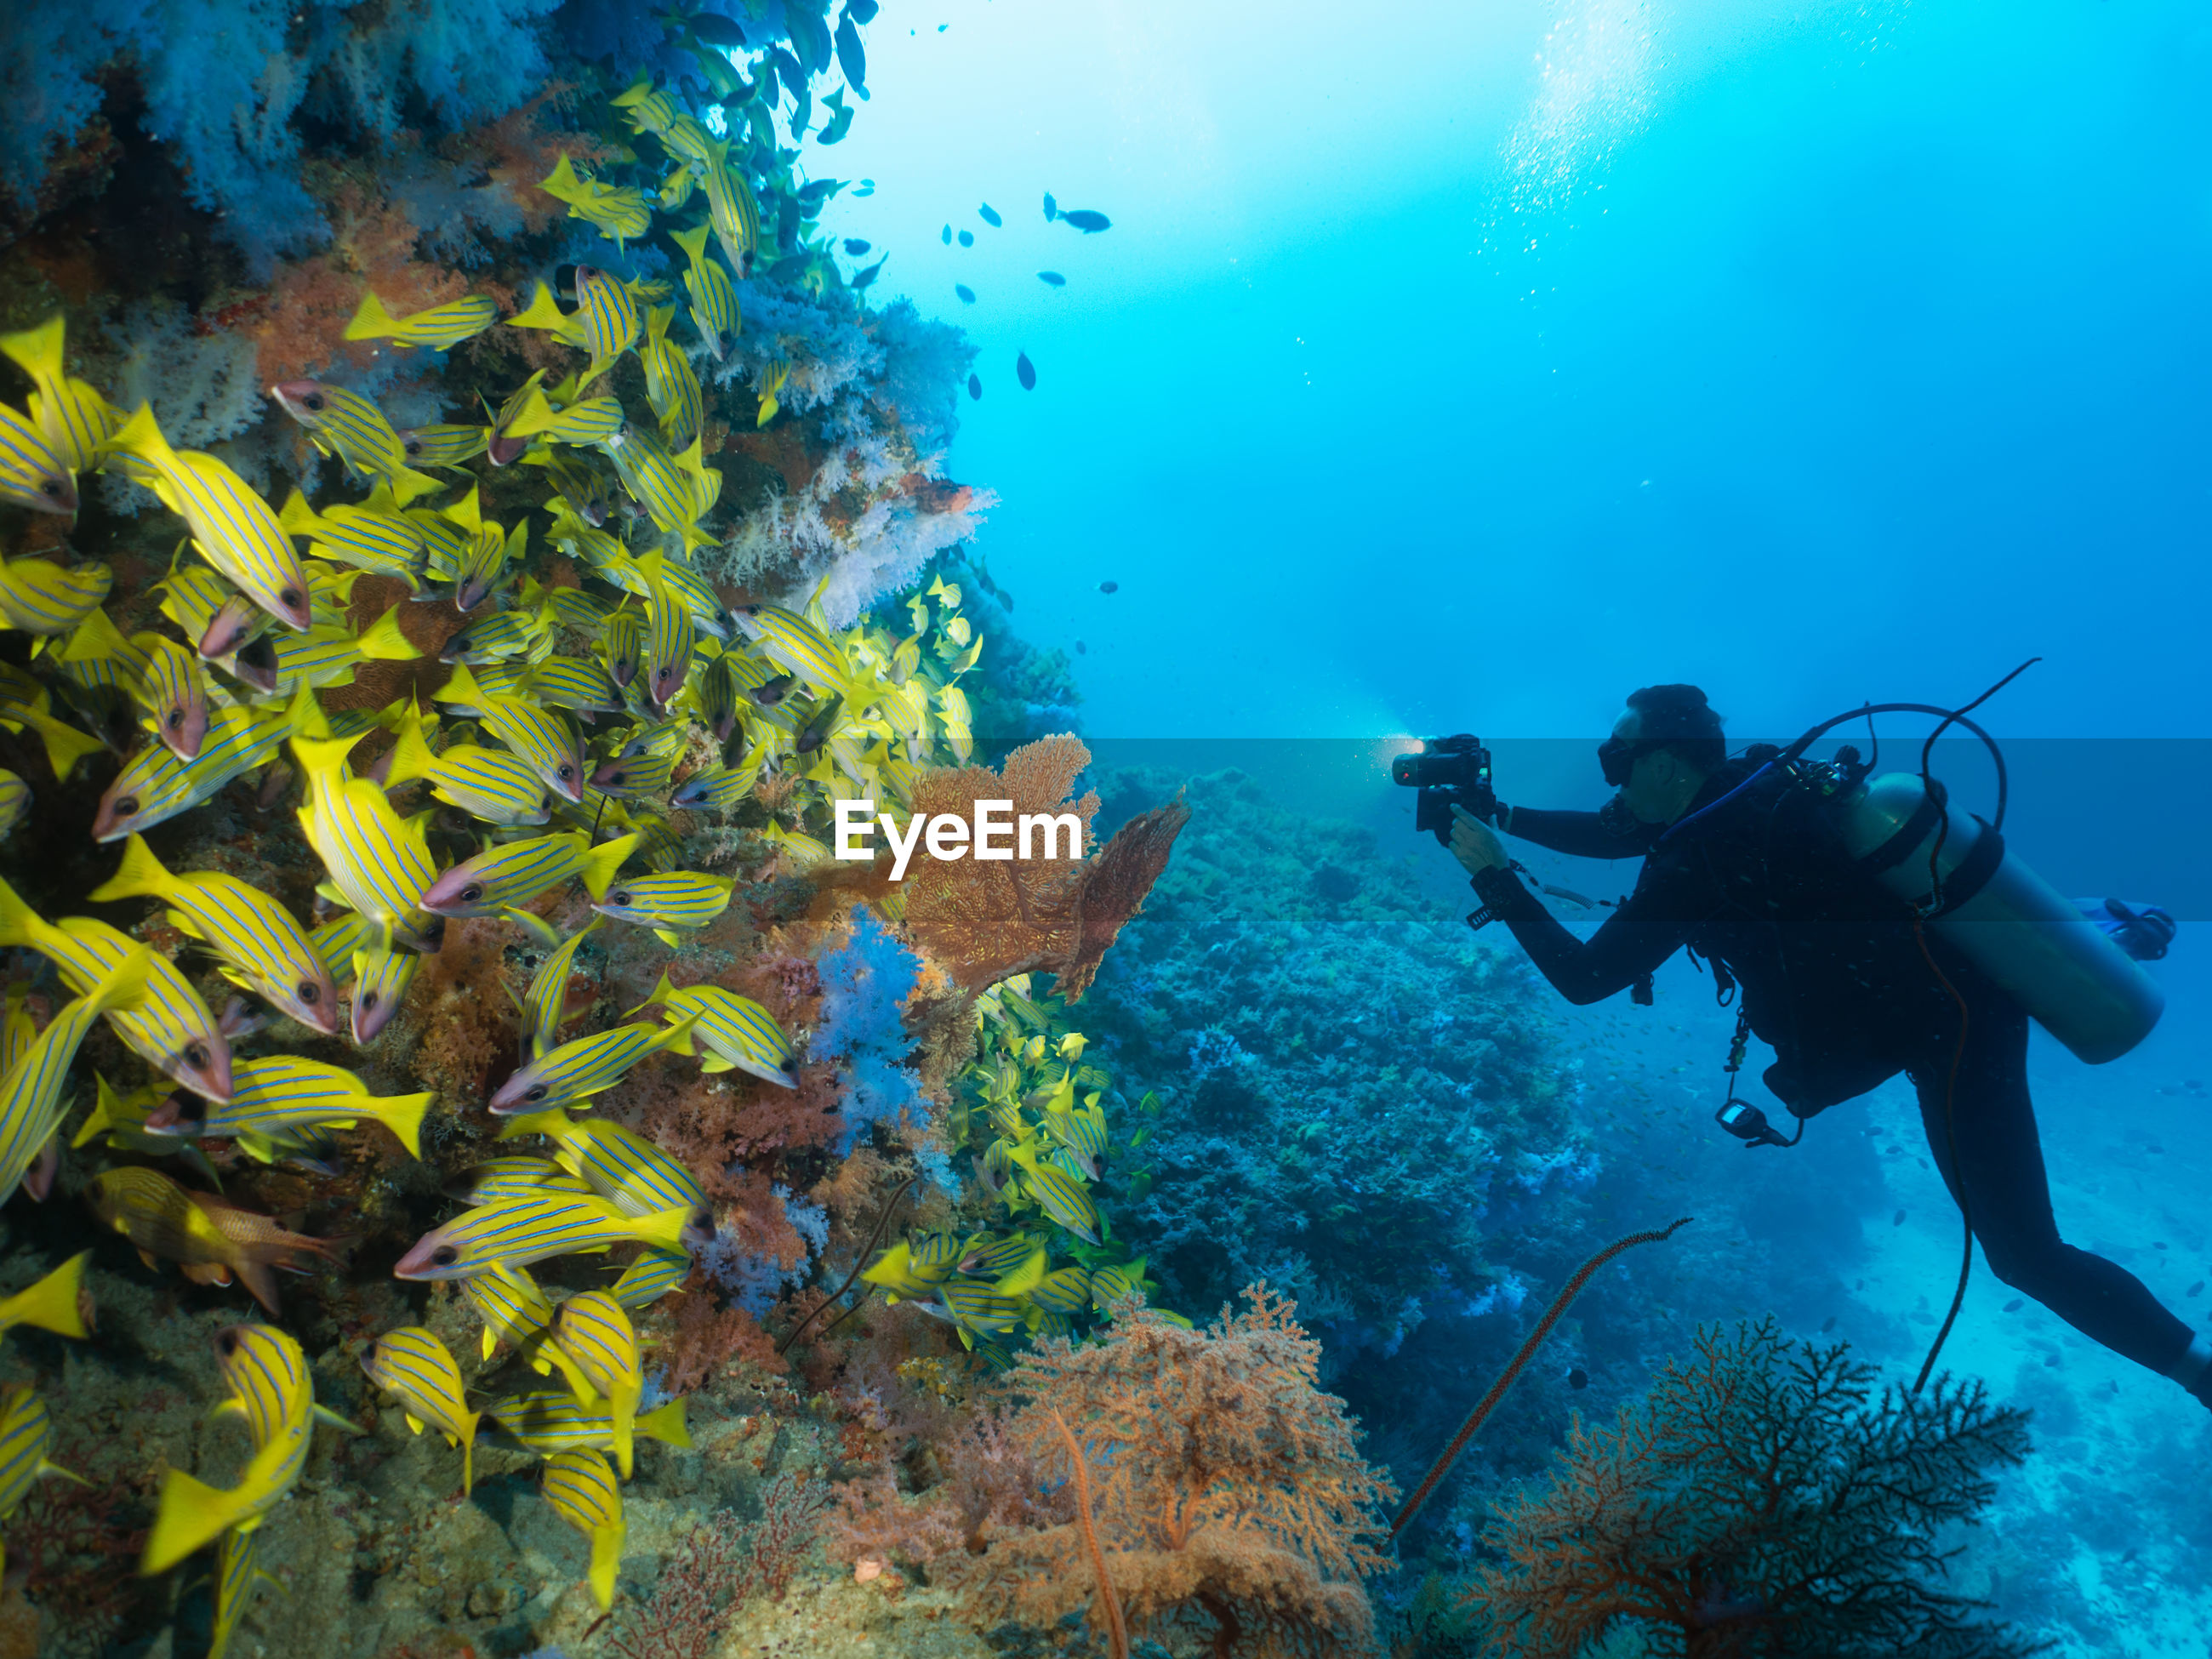 Man photographing school of fish while scuba diving undersea